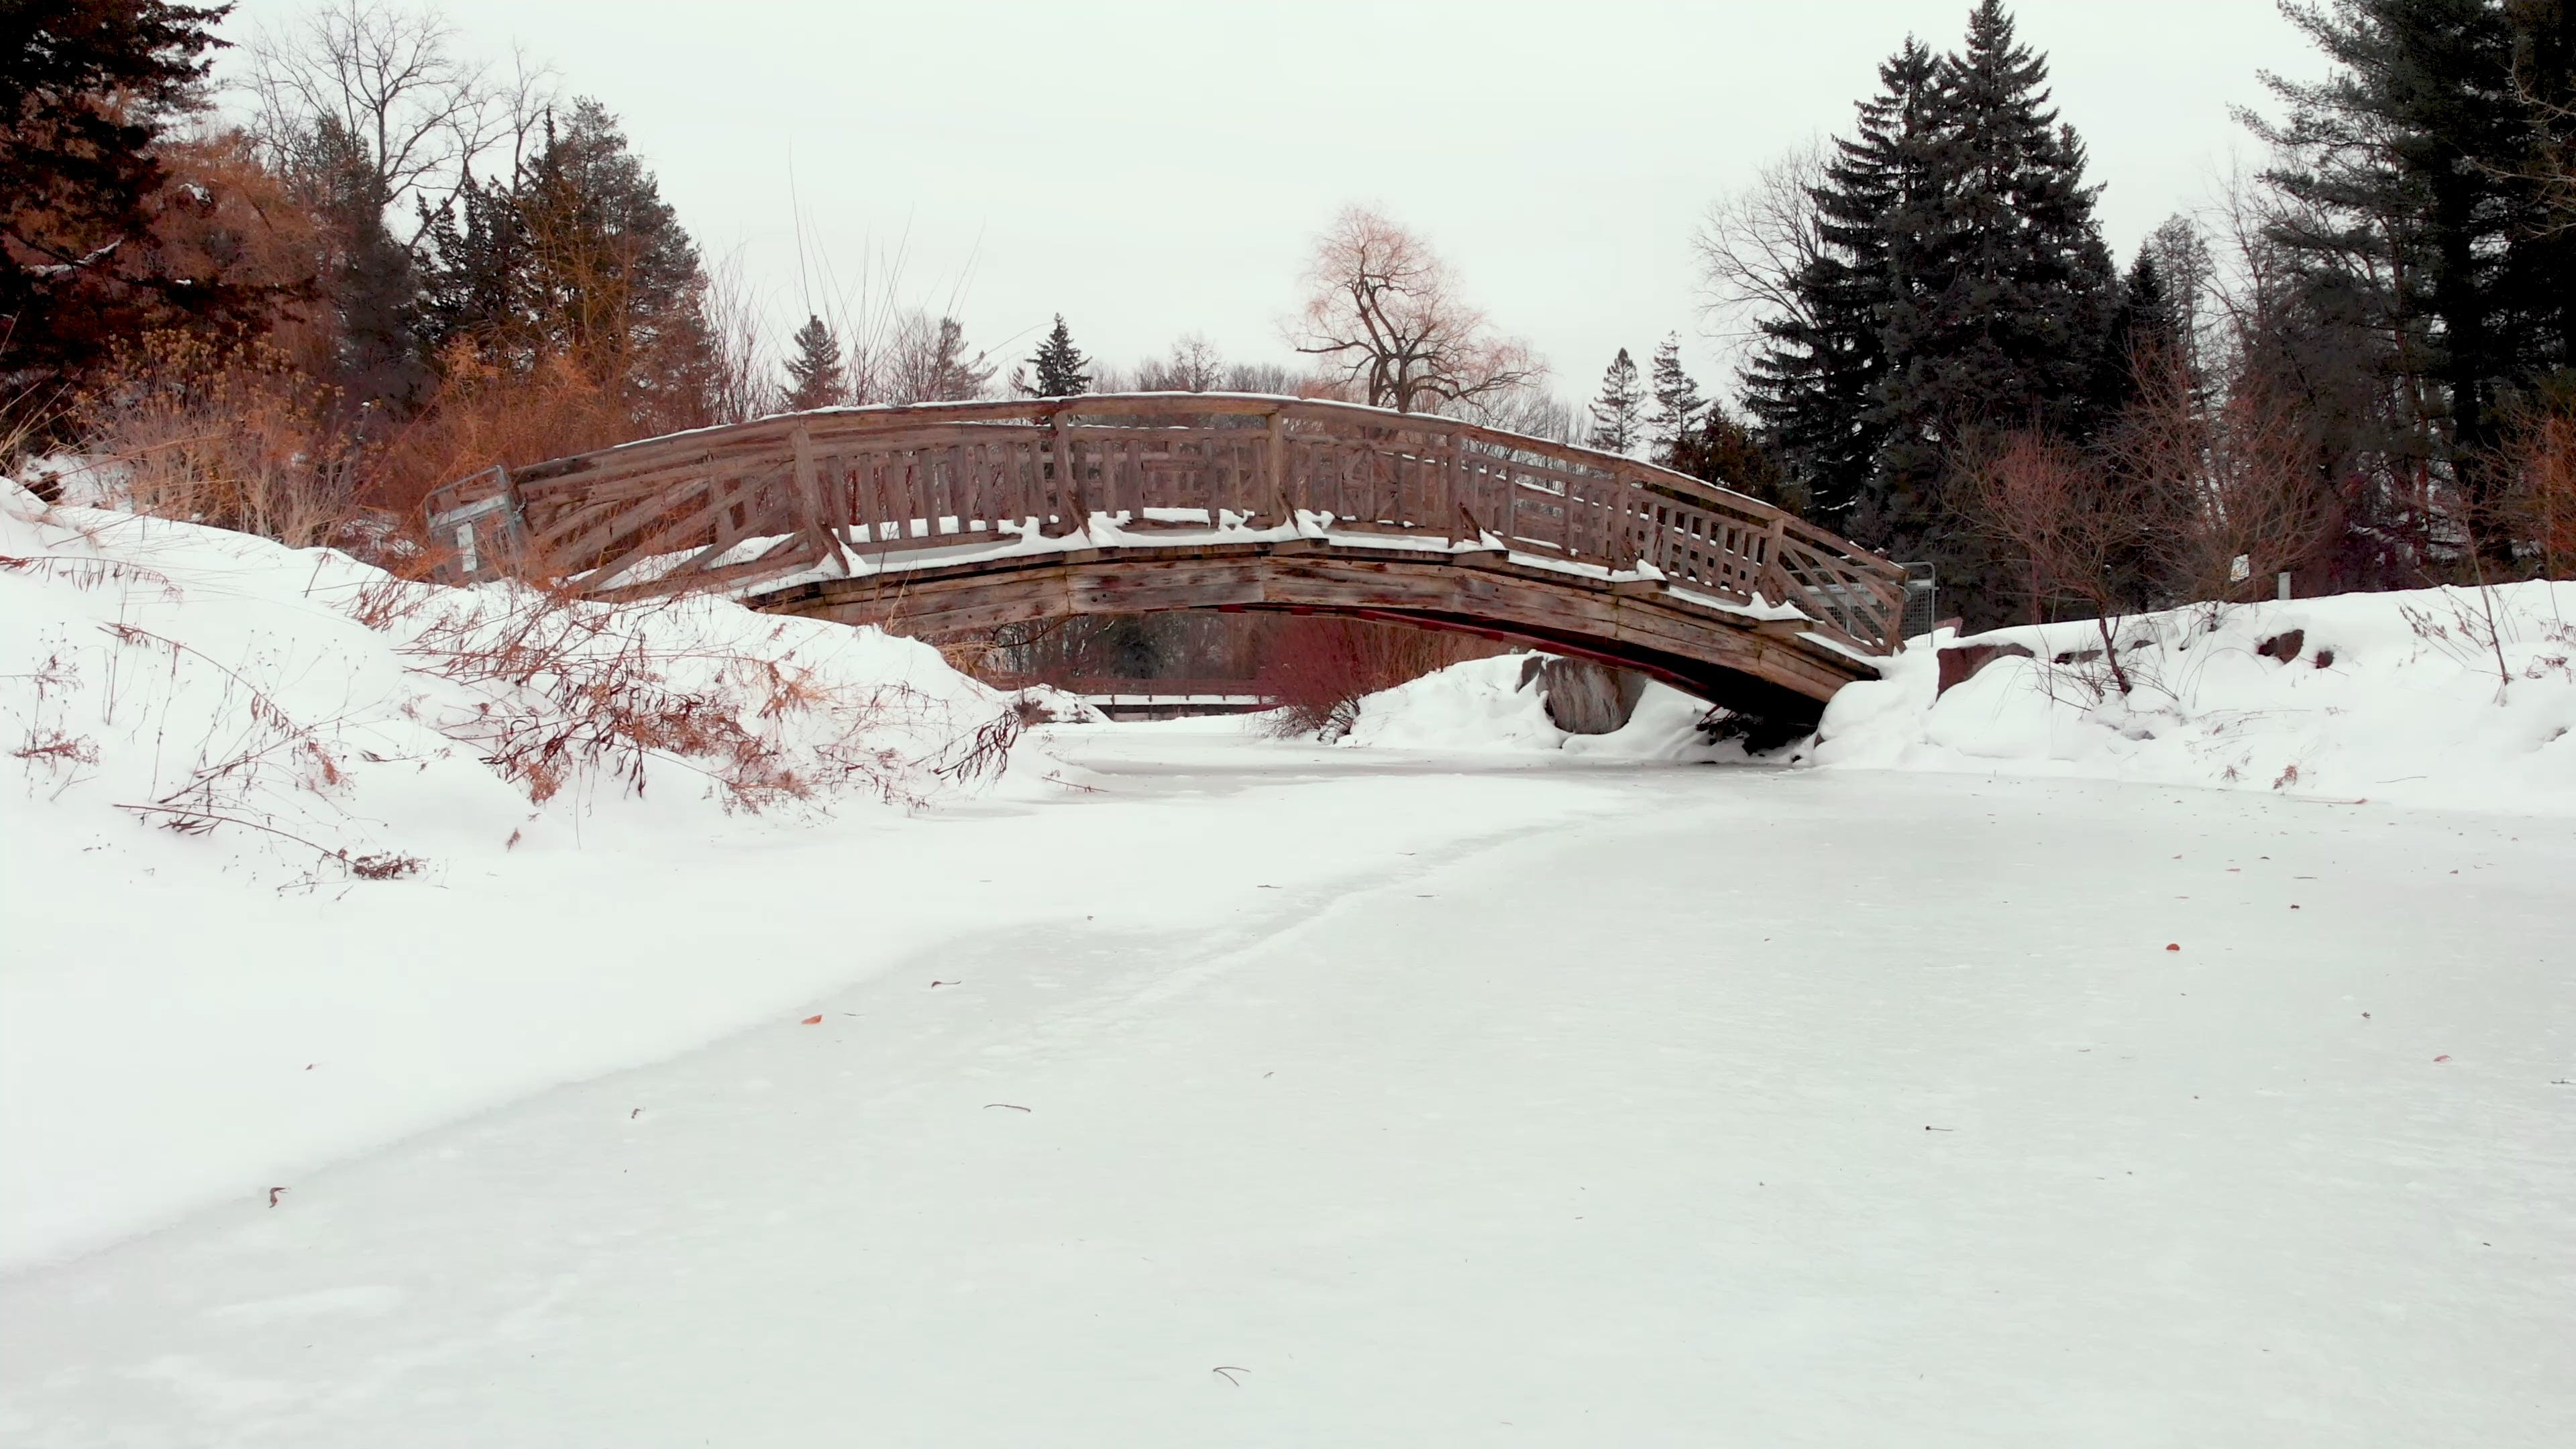 Frozen River On A Snow Covered Park